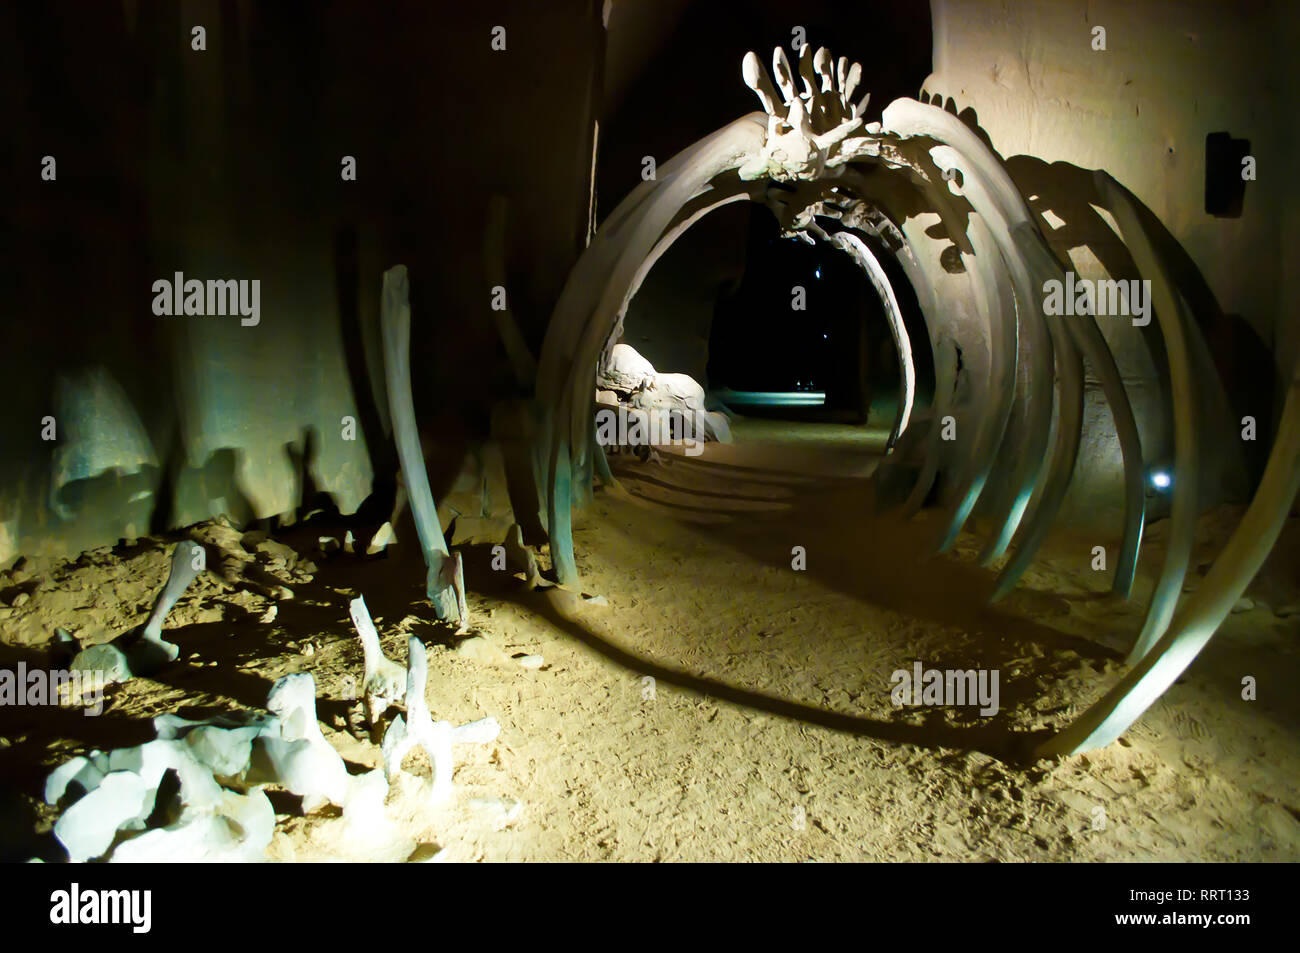 Doué-la-Fontaine, France - April 27, 2018:  Les Perrières - Le Mystère des faluns museum. An arch in the cave made from dinosaur bones in a dark creep - Stock Image